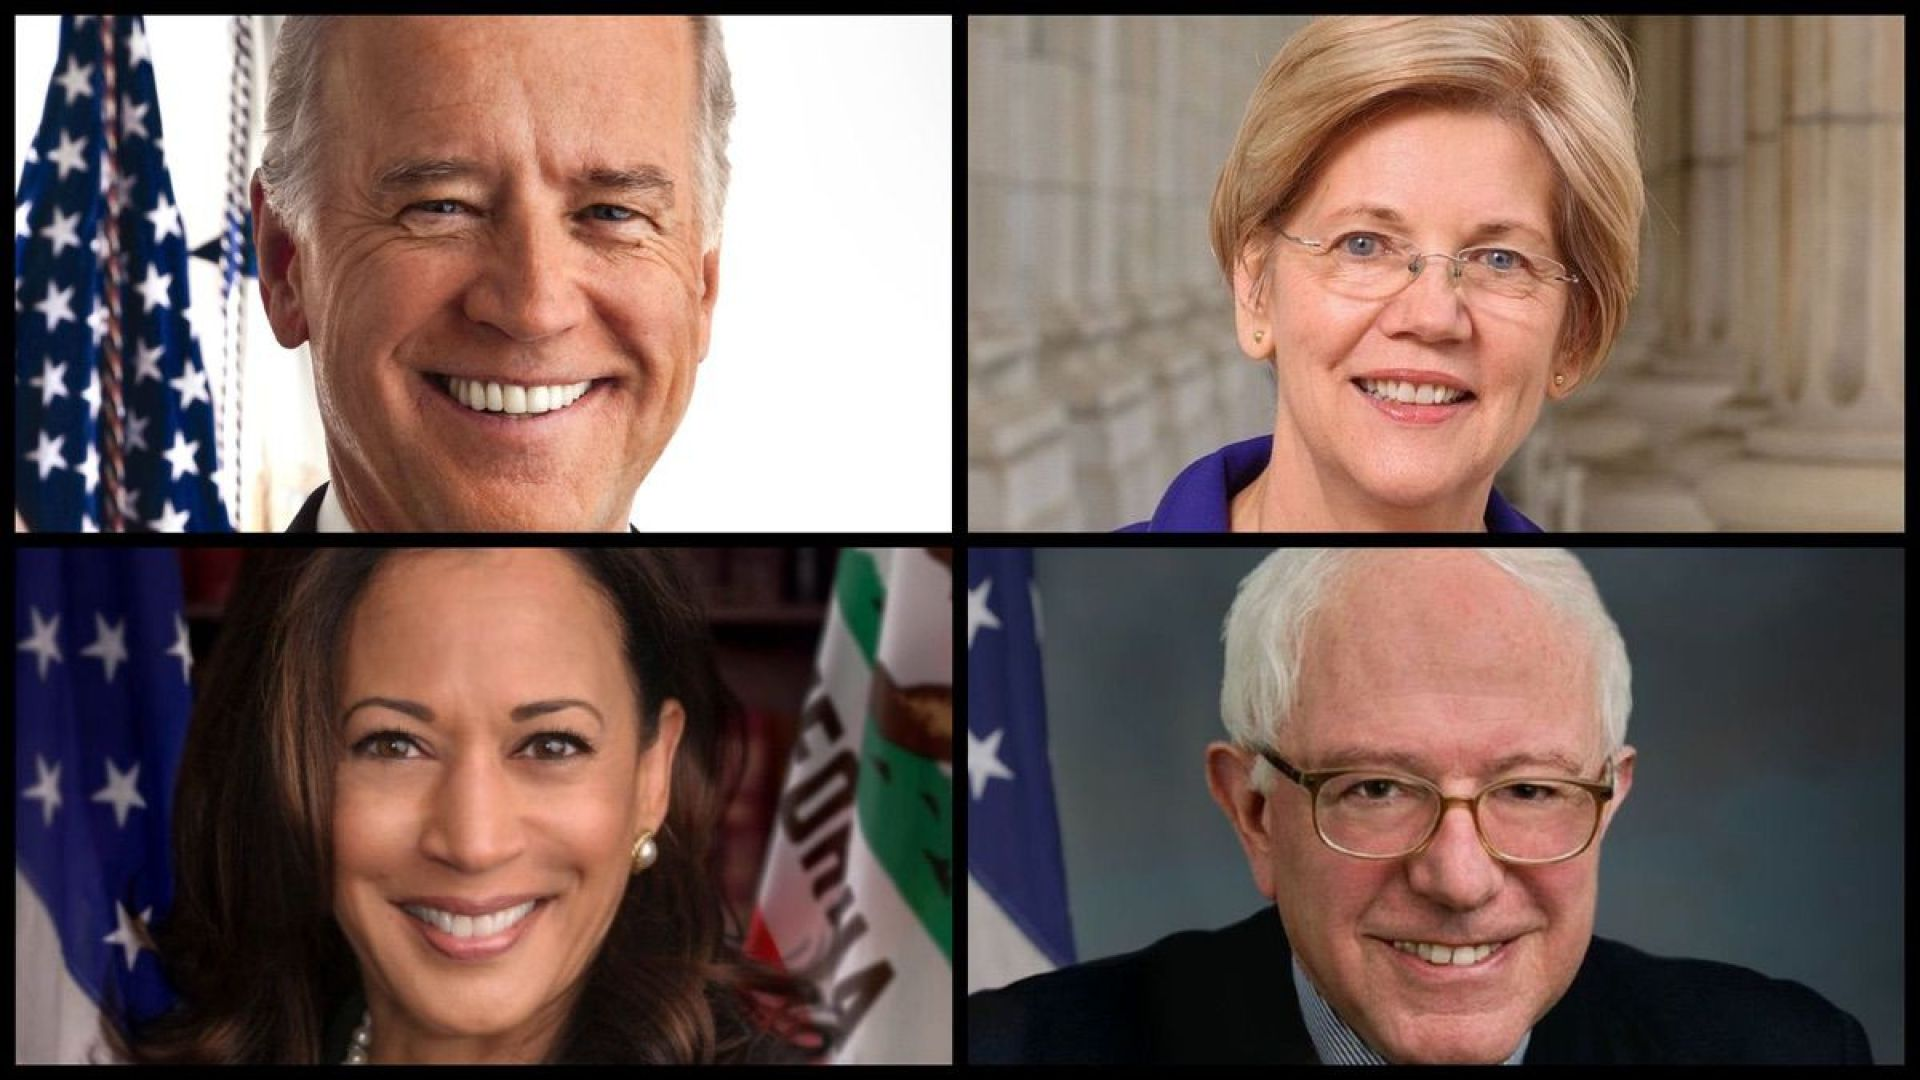 From top left: Joe Biden, Elizabeth Warren, Kamala Harris, Bernie Sanders